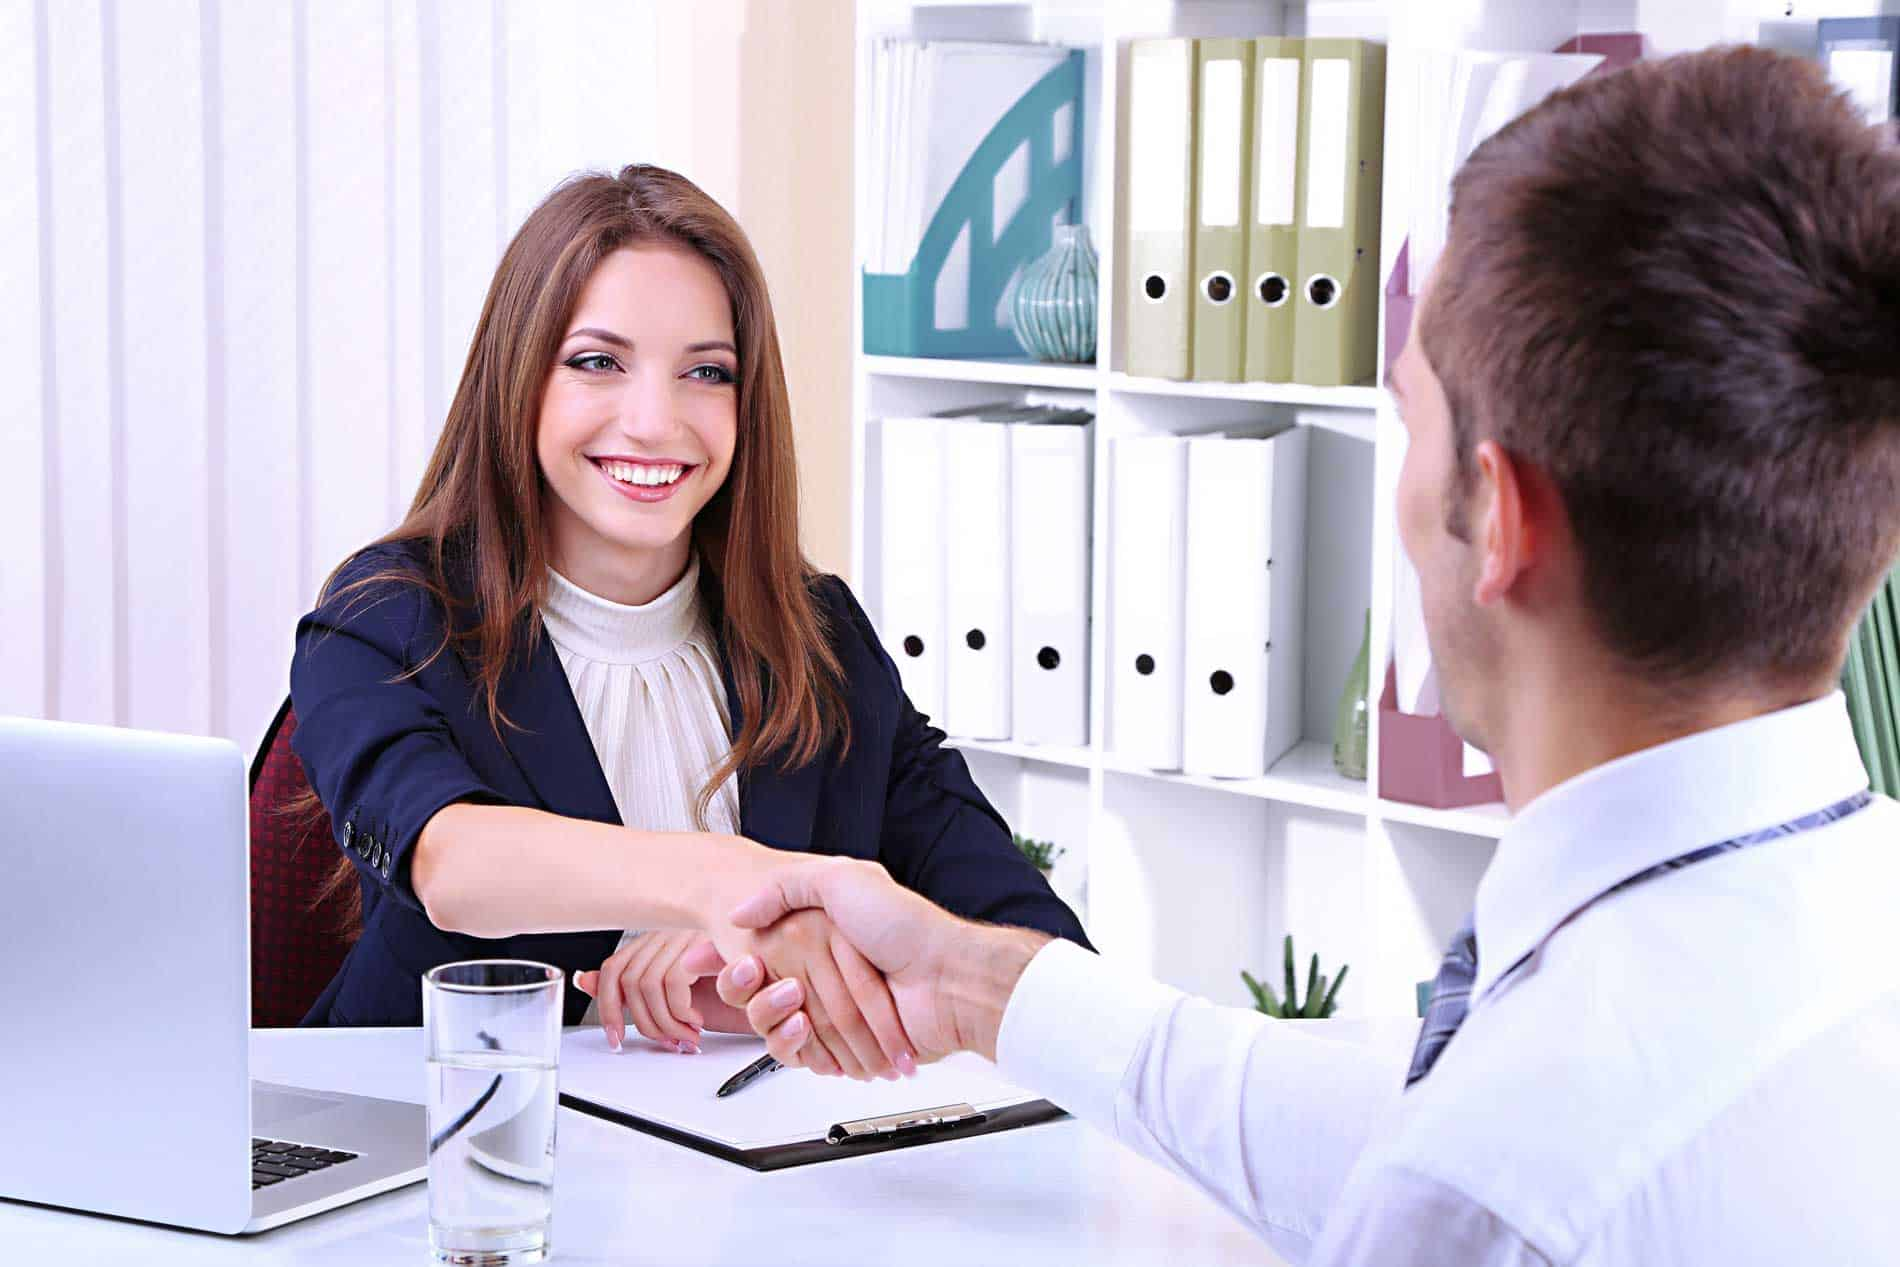 Finding the Right Applicant for the Job